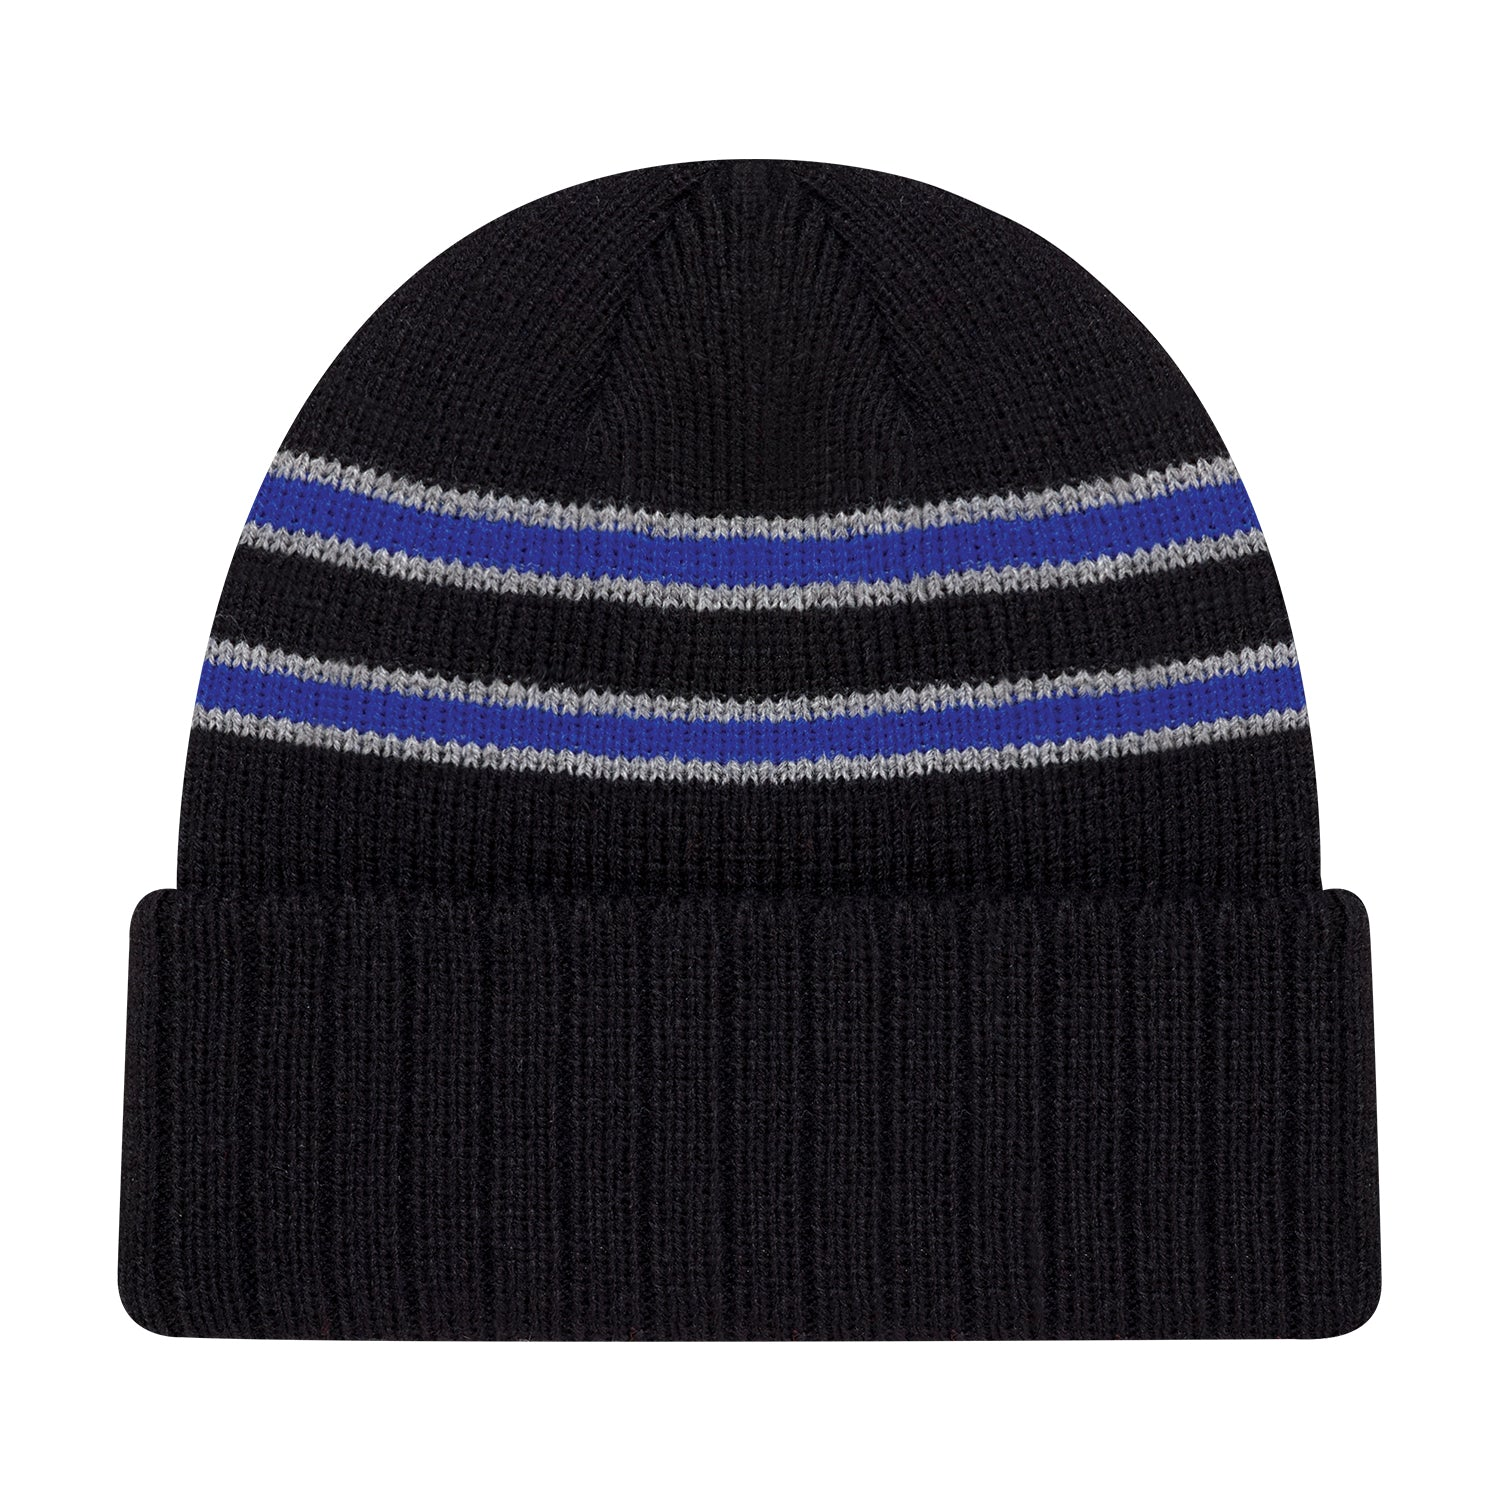 STRIPE RIB KNIT CUFF TOQUE